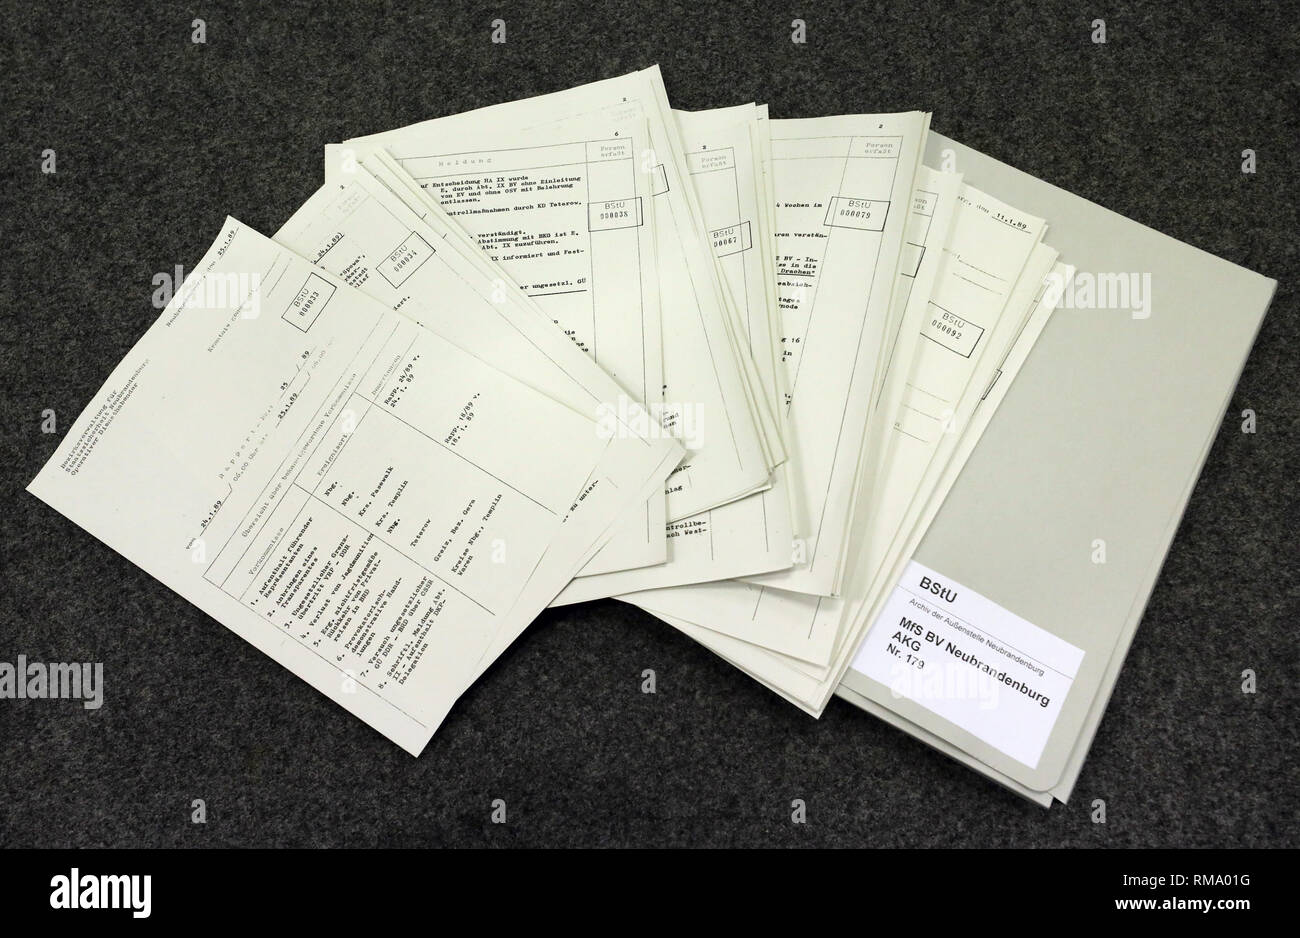 """Neubrandenburg, Germany. 05th Feb, 2019. A """"Report Report"""" of the Stasi in the Archive of the Neubrandenburg Branch Office of the Federal Commissioner for Stasi Files BStU. In a monthly series of events, the Neubrandenburg branch office of the BStU provides information about these """"Rapport-Berichte"""" from the time of upheaval. Before each reading there is a guided tour through the archive. Credit: Bernd Wüstneck/dpa-Zentralbild/ZB/dpa/Alamy Live News Stock Photo"""